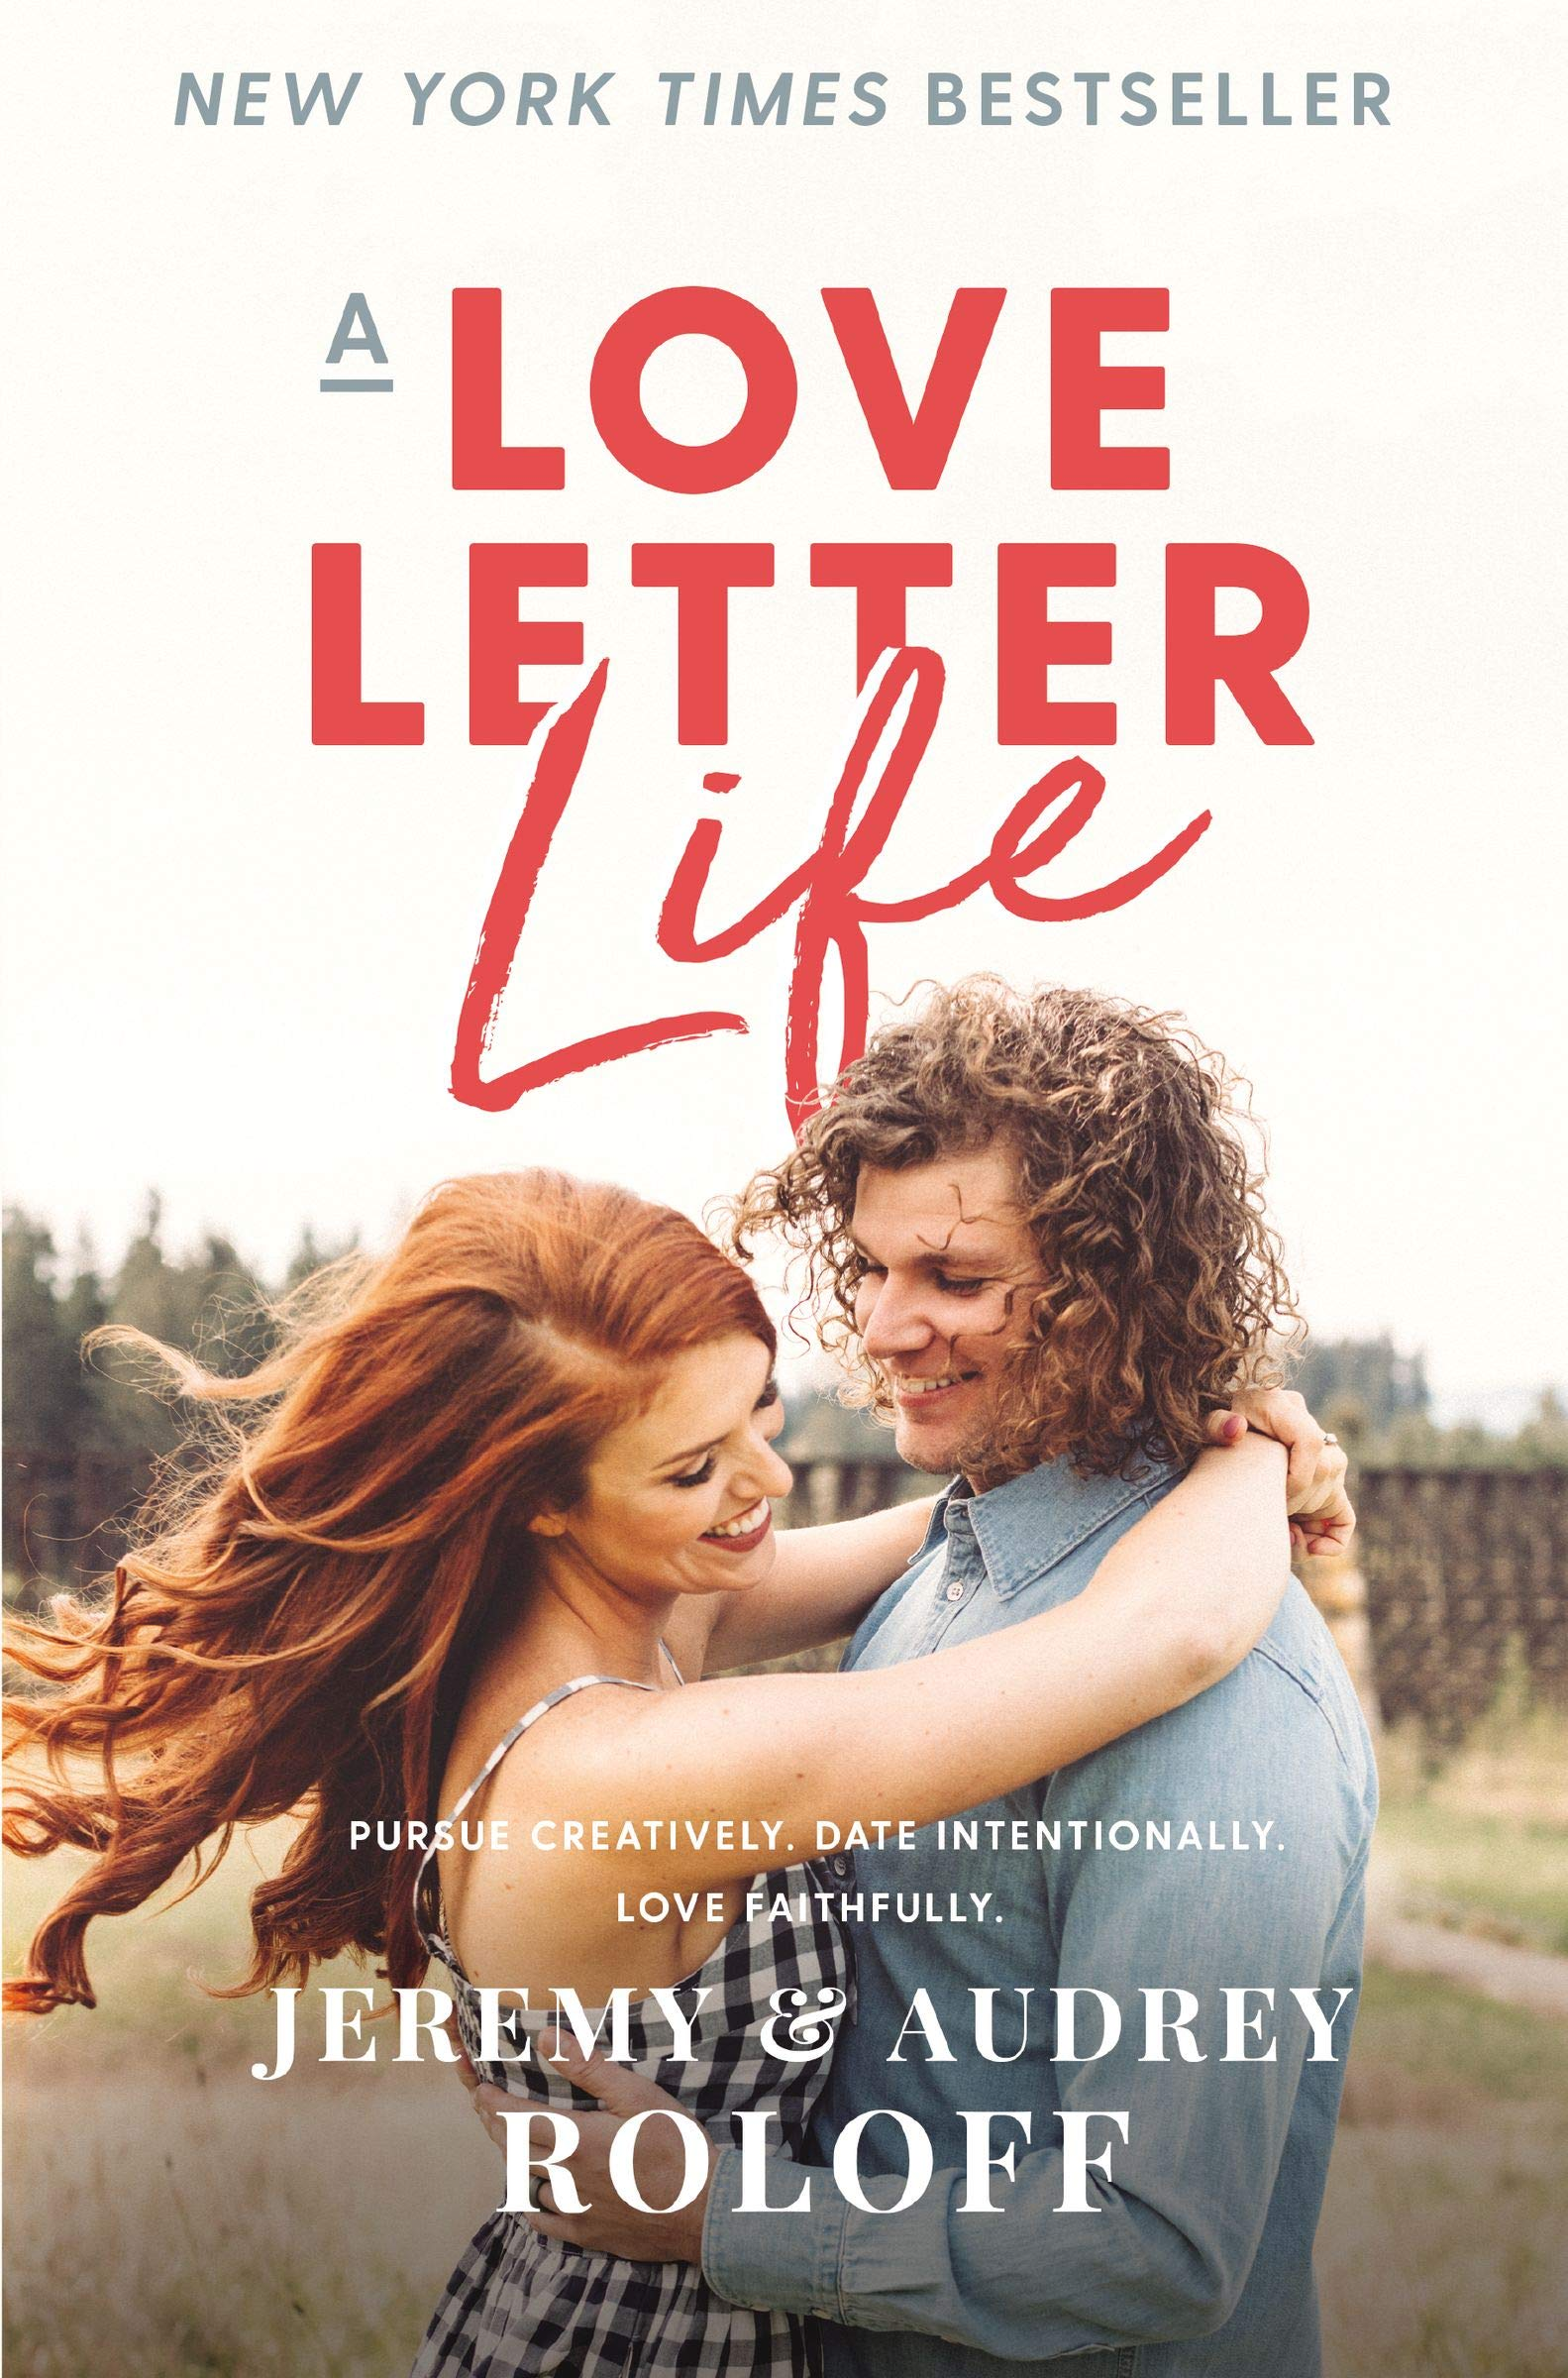 A Love Letter Life: Pursue Creatively, Date Intentionally, Love Faithfully by Jeremy and Audrey Roloff